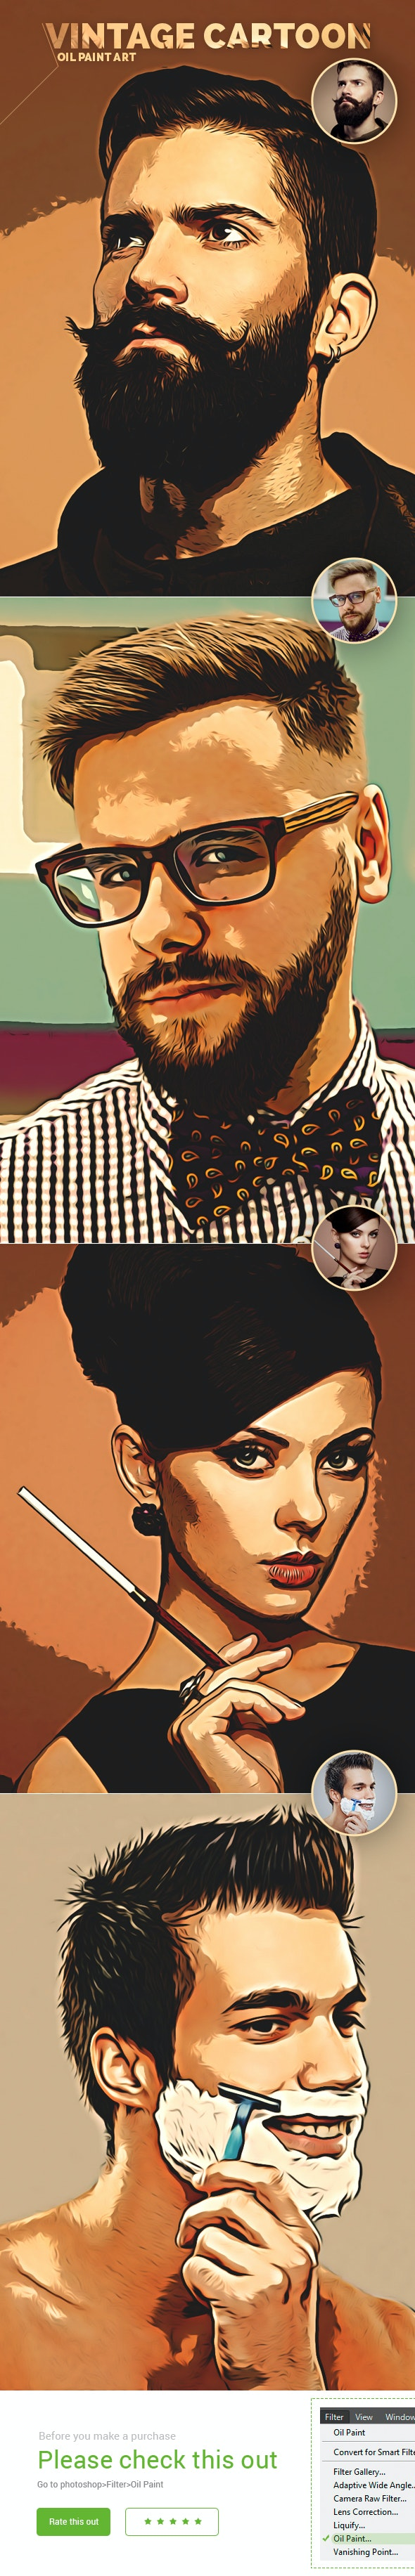 Vintage Cartoon Art - Photo Effects Actions